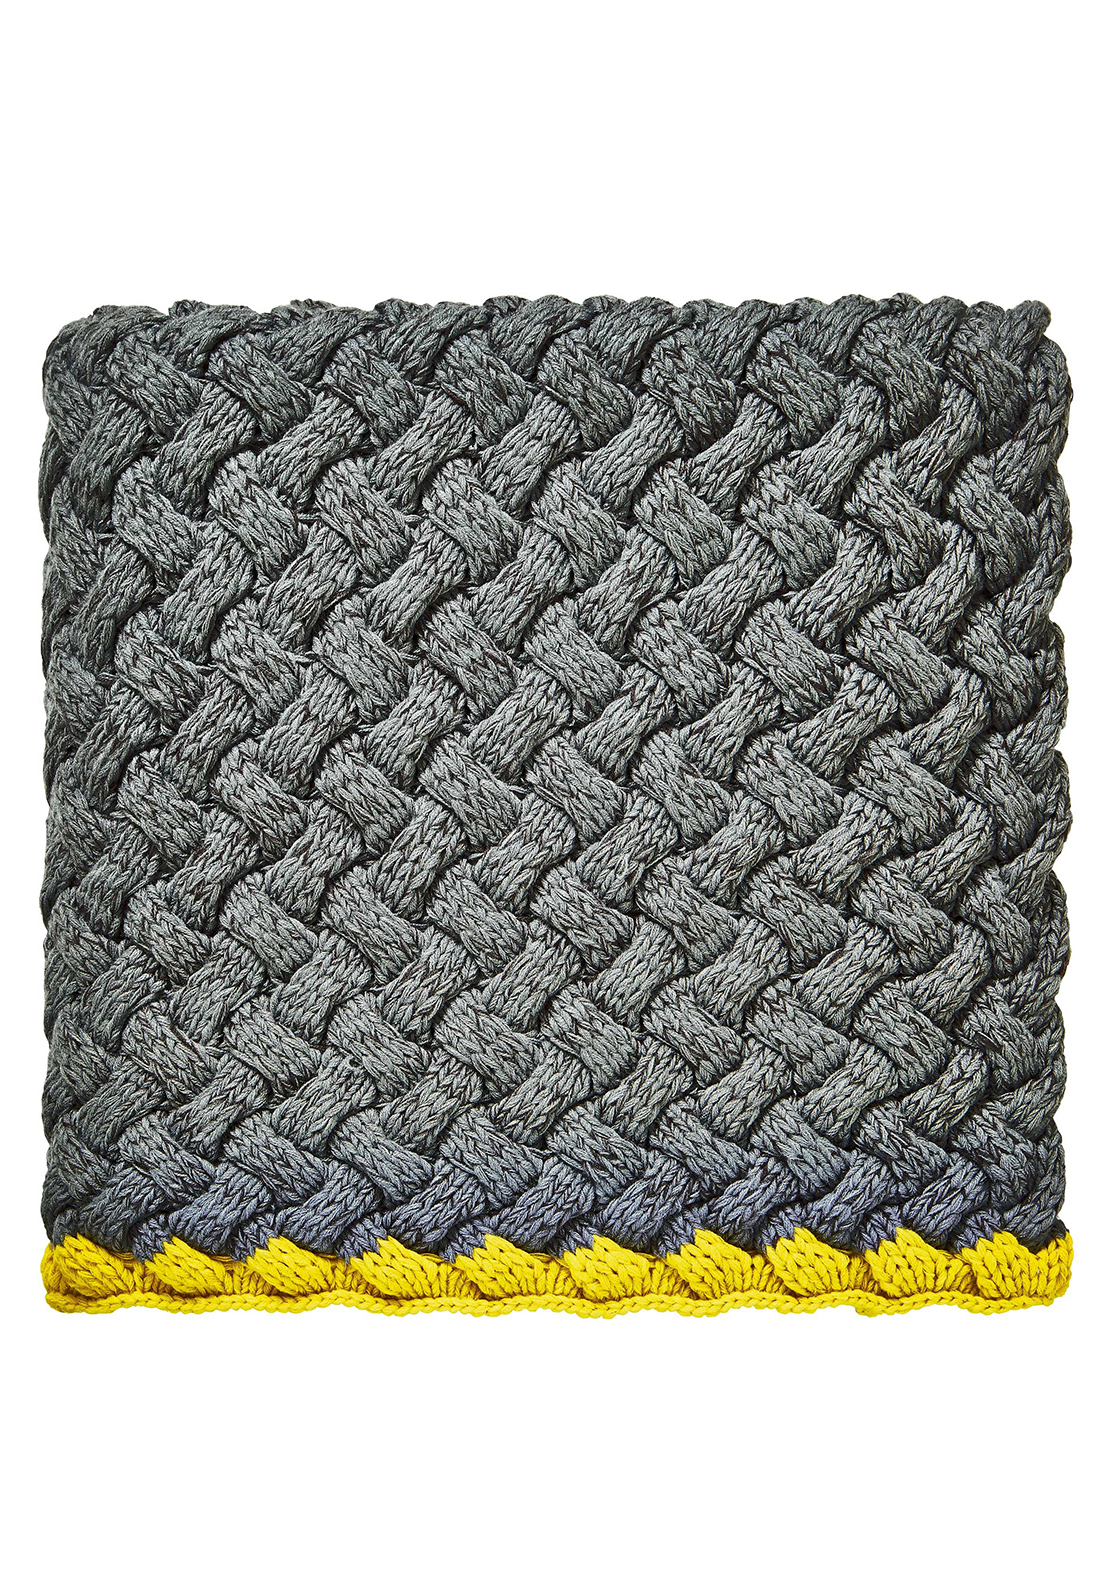 Clarissa Hulse Meadow grass Charcoal Knitted Throw